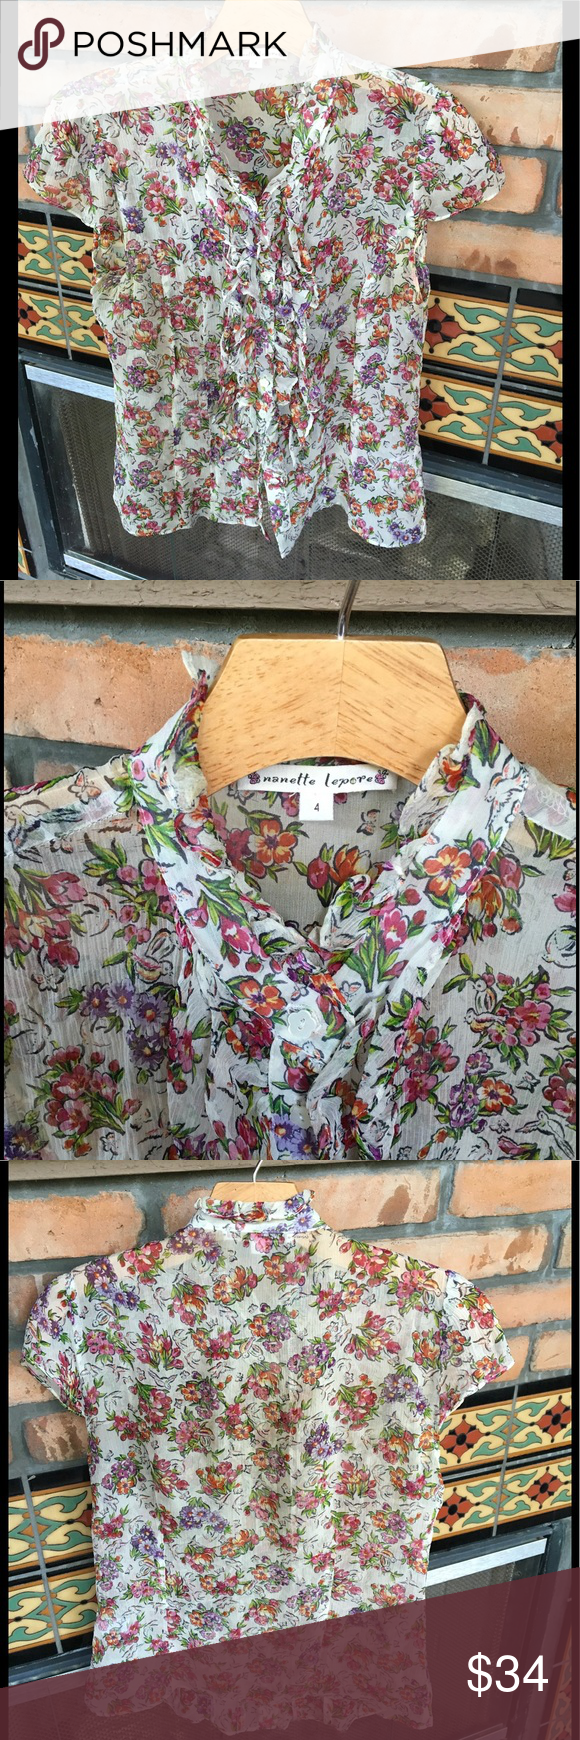 🌸BEAUTIFUL DELICATE NANNETTE LAPORE FLORAL🌸 SWEET SUMMER TIME DELICATE BLOUSE IN GOOD PRELOVED CONDITION. Nannette Lapore Tops Blouses